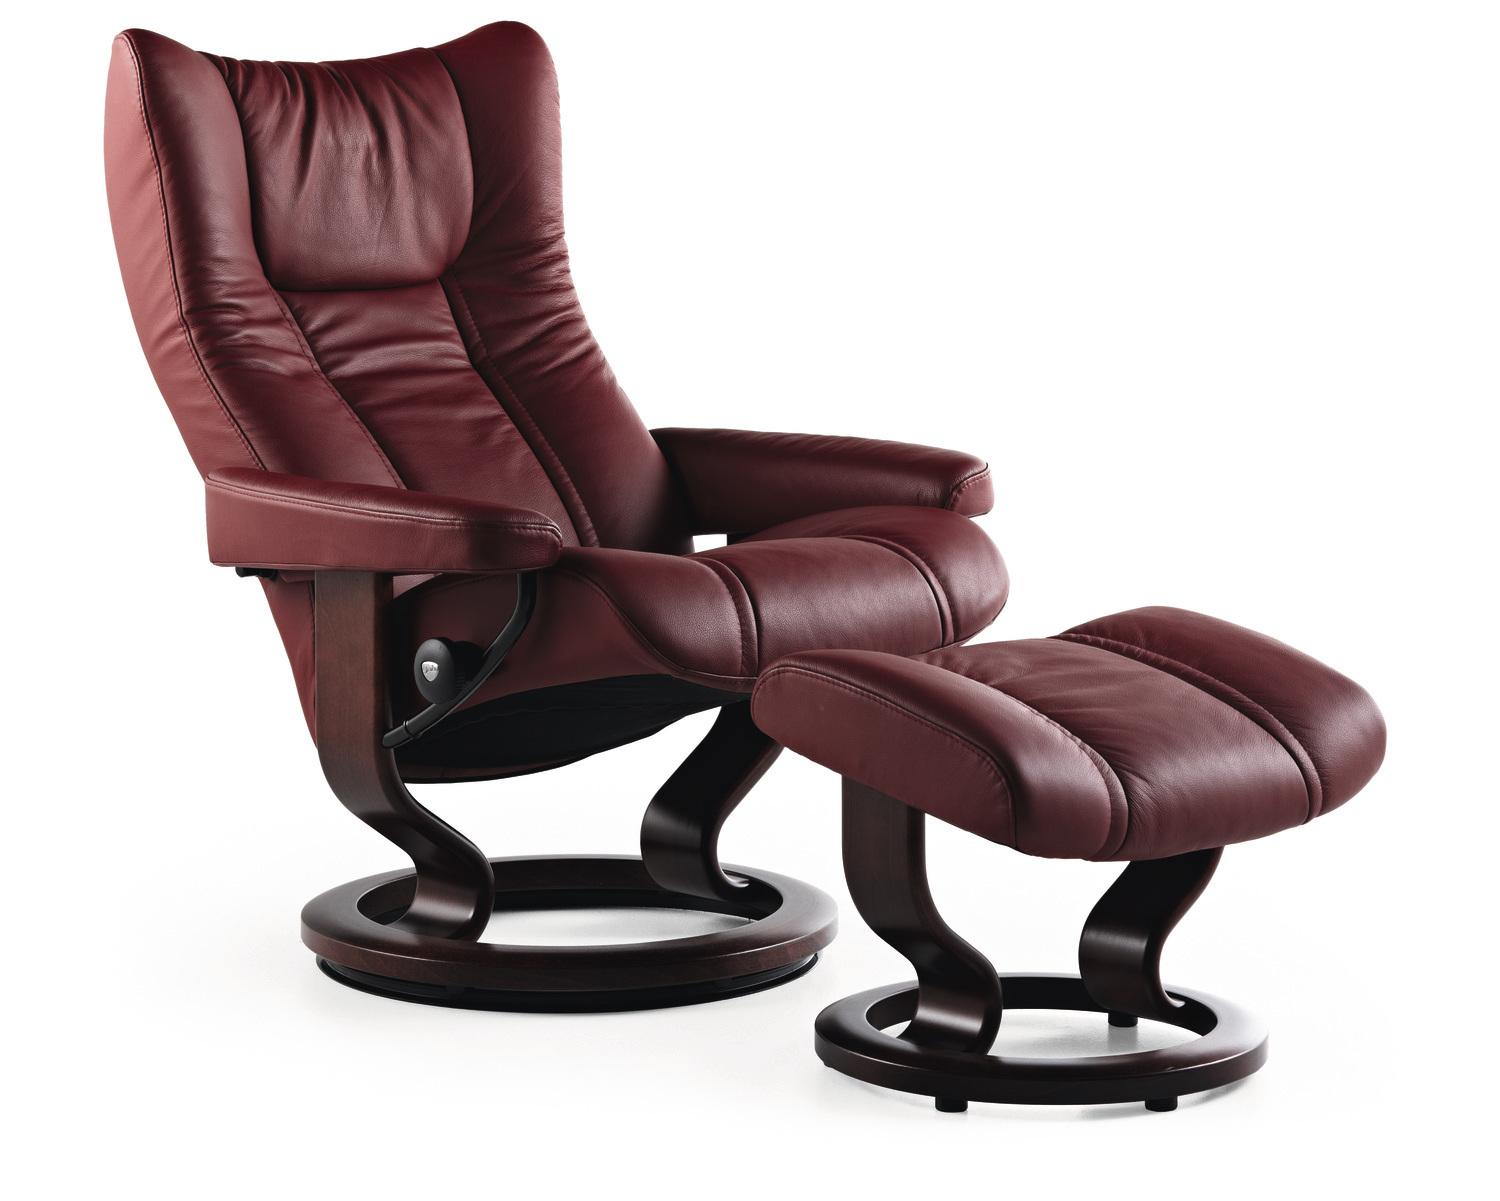 Stressless By EkornesStressless Wing Small Classic Base Chair And Ottoman